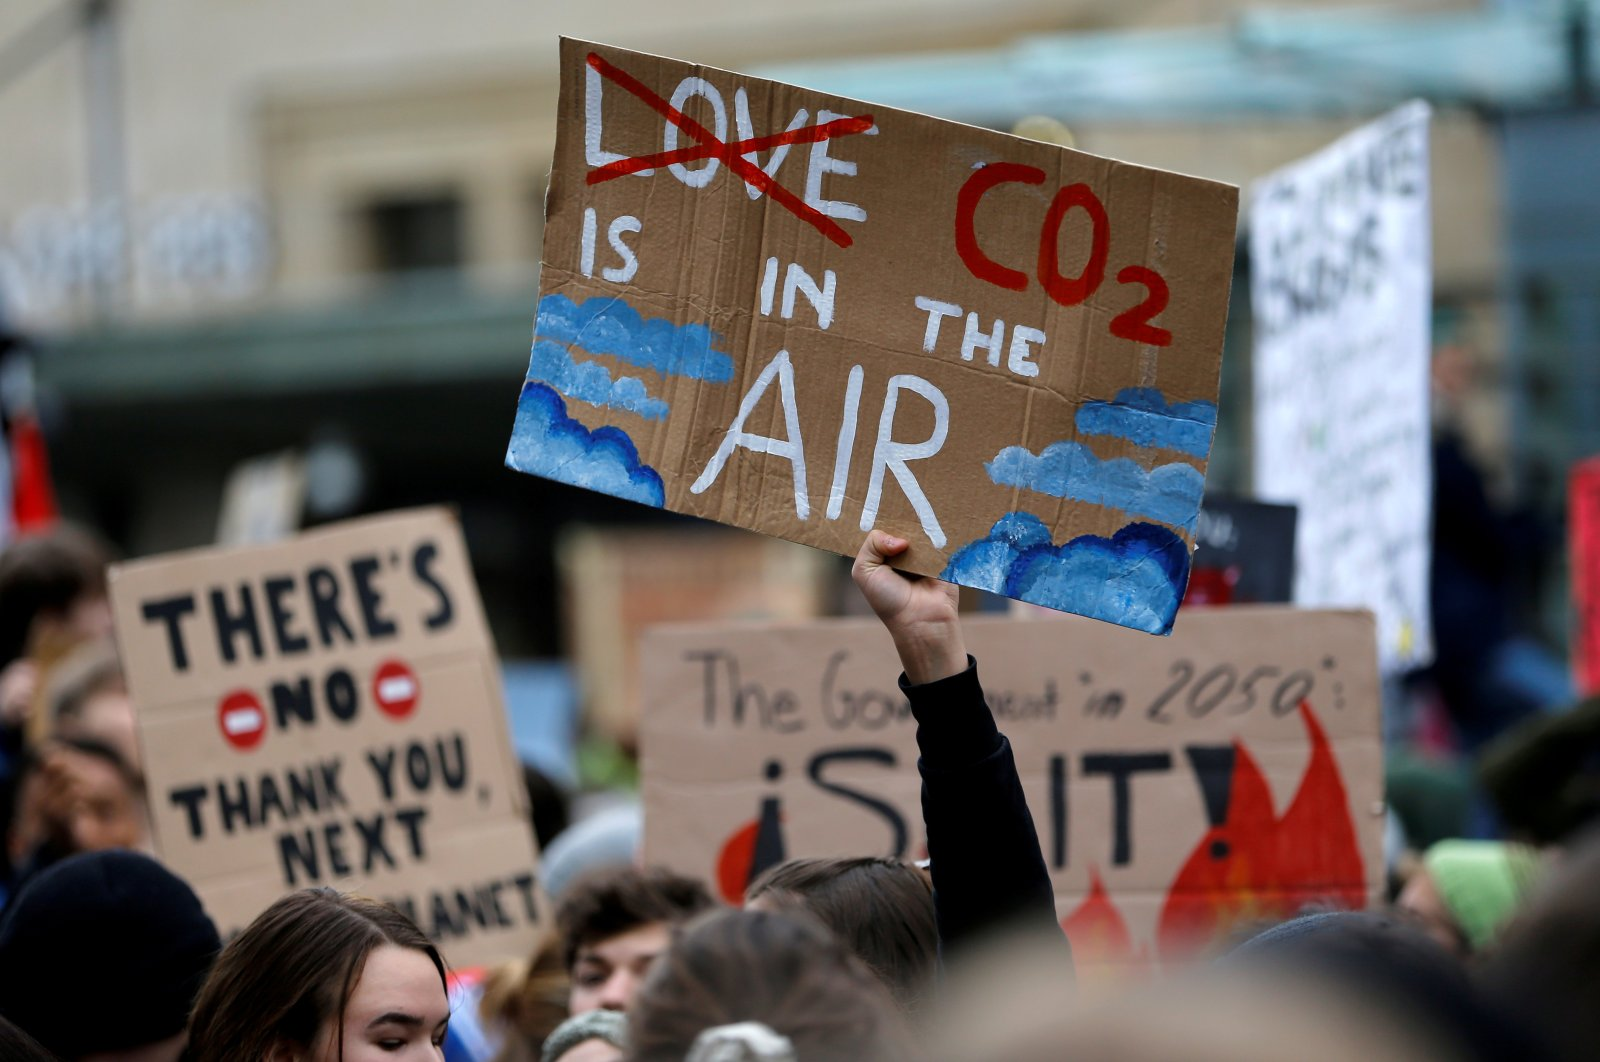 A climate change activist holds a sign during a demonstration of the Fridays for Future movement in Lausanne, Switzerland January 17, 2020. (Reuters Photo)